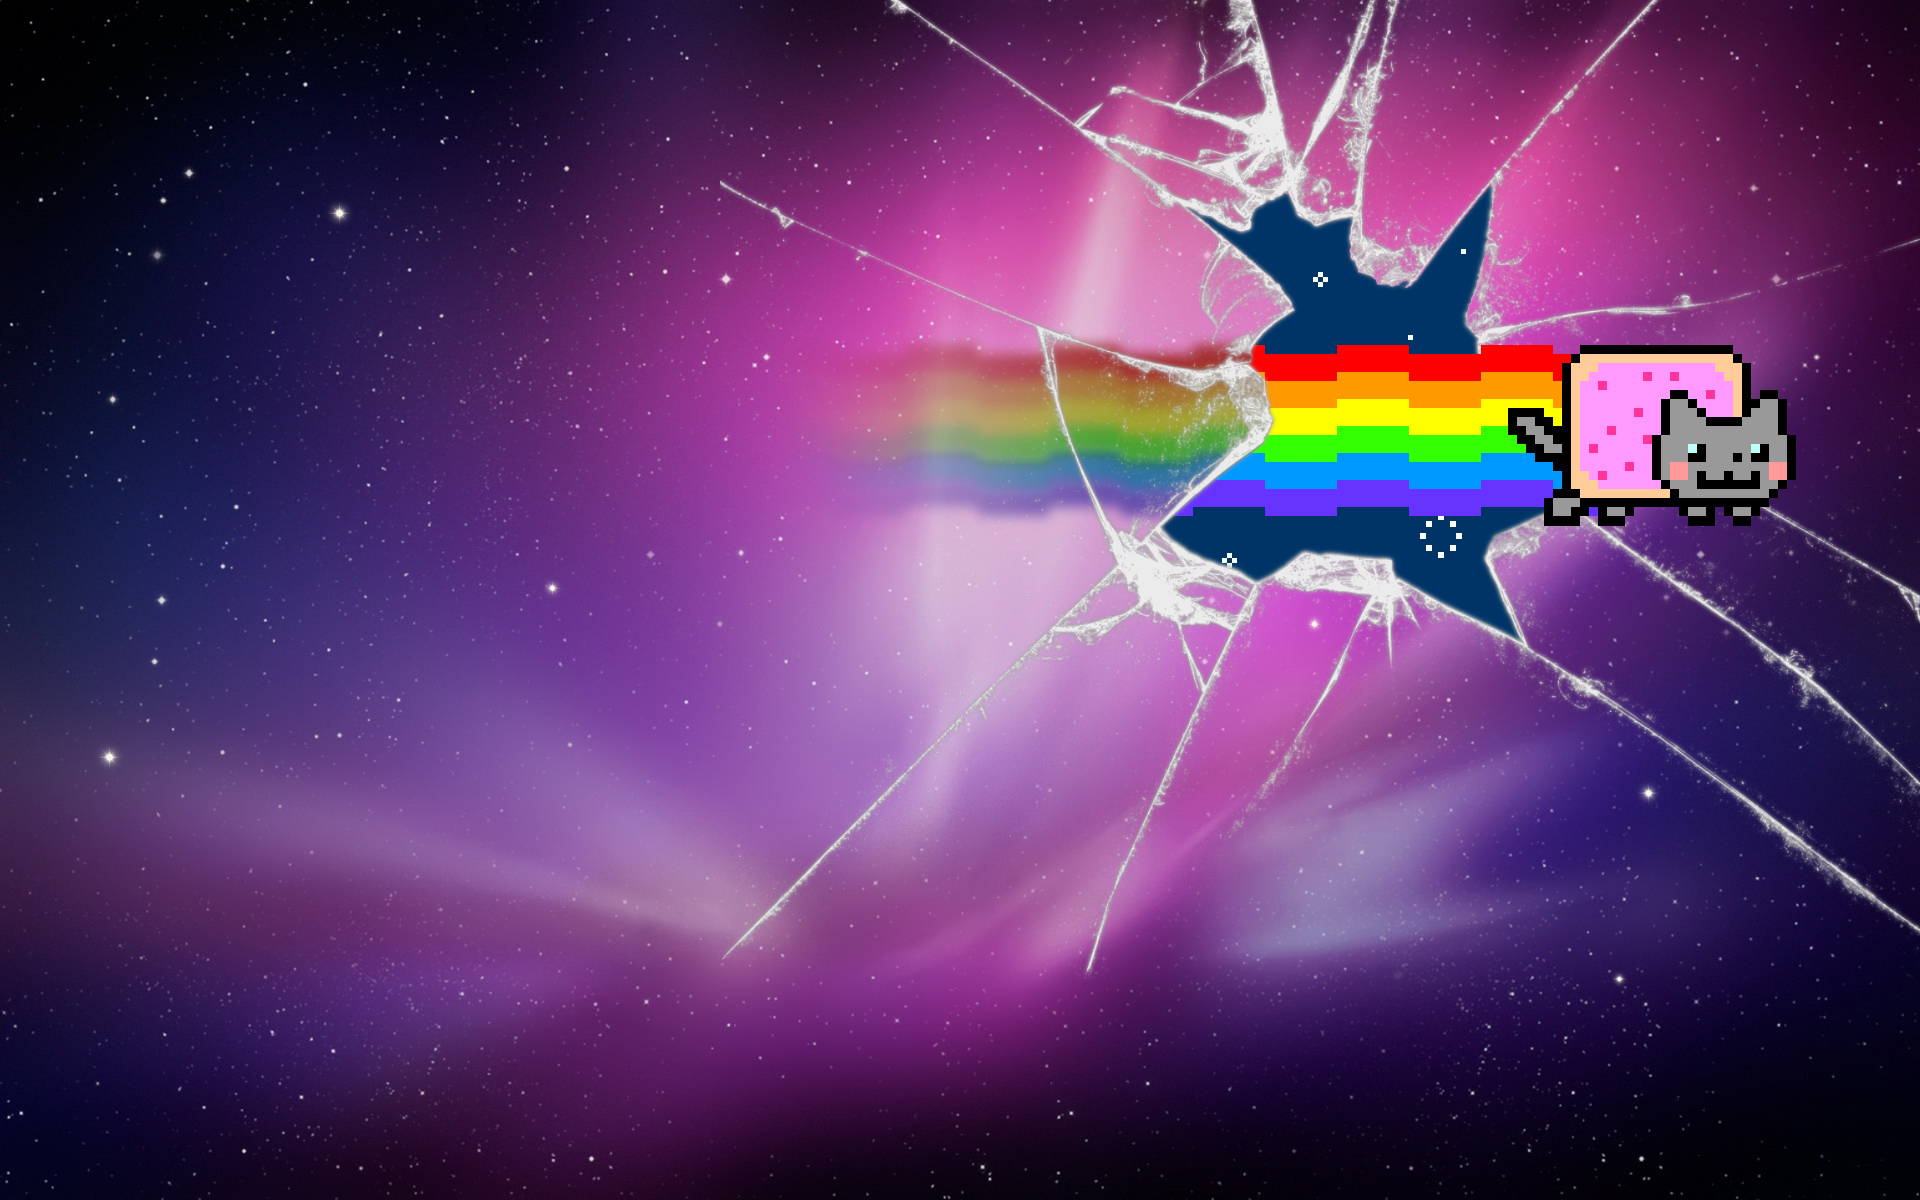 Nyan Cat Wallpapers Free Download  Hd Wallpapers